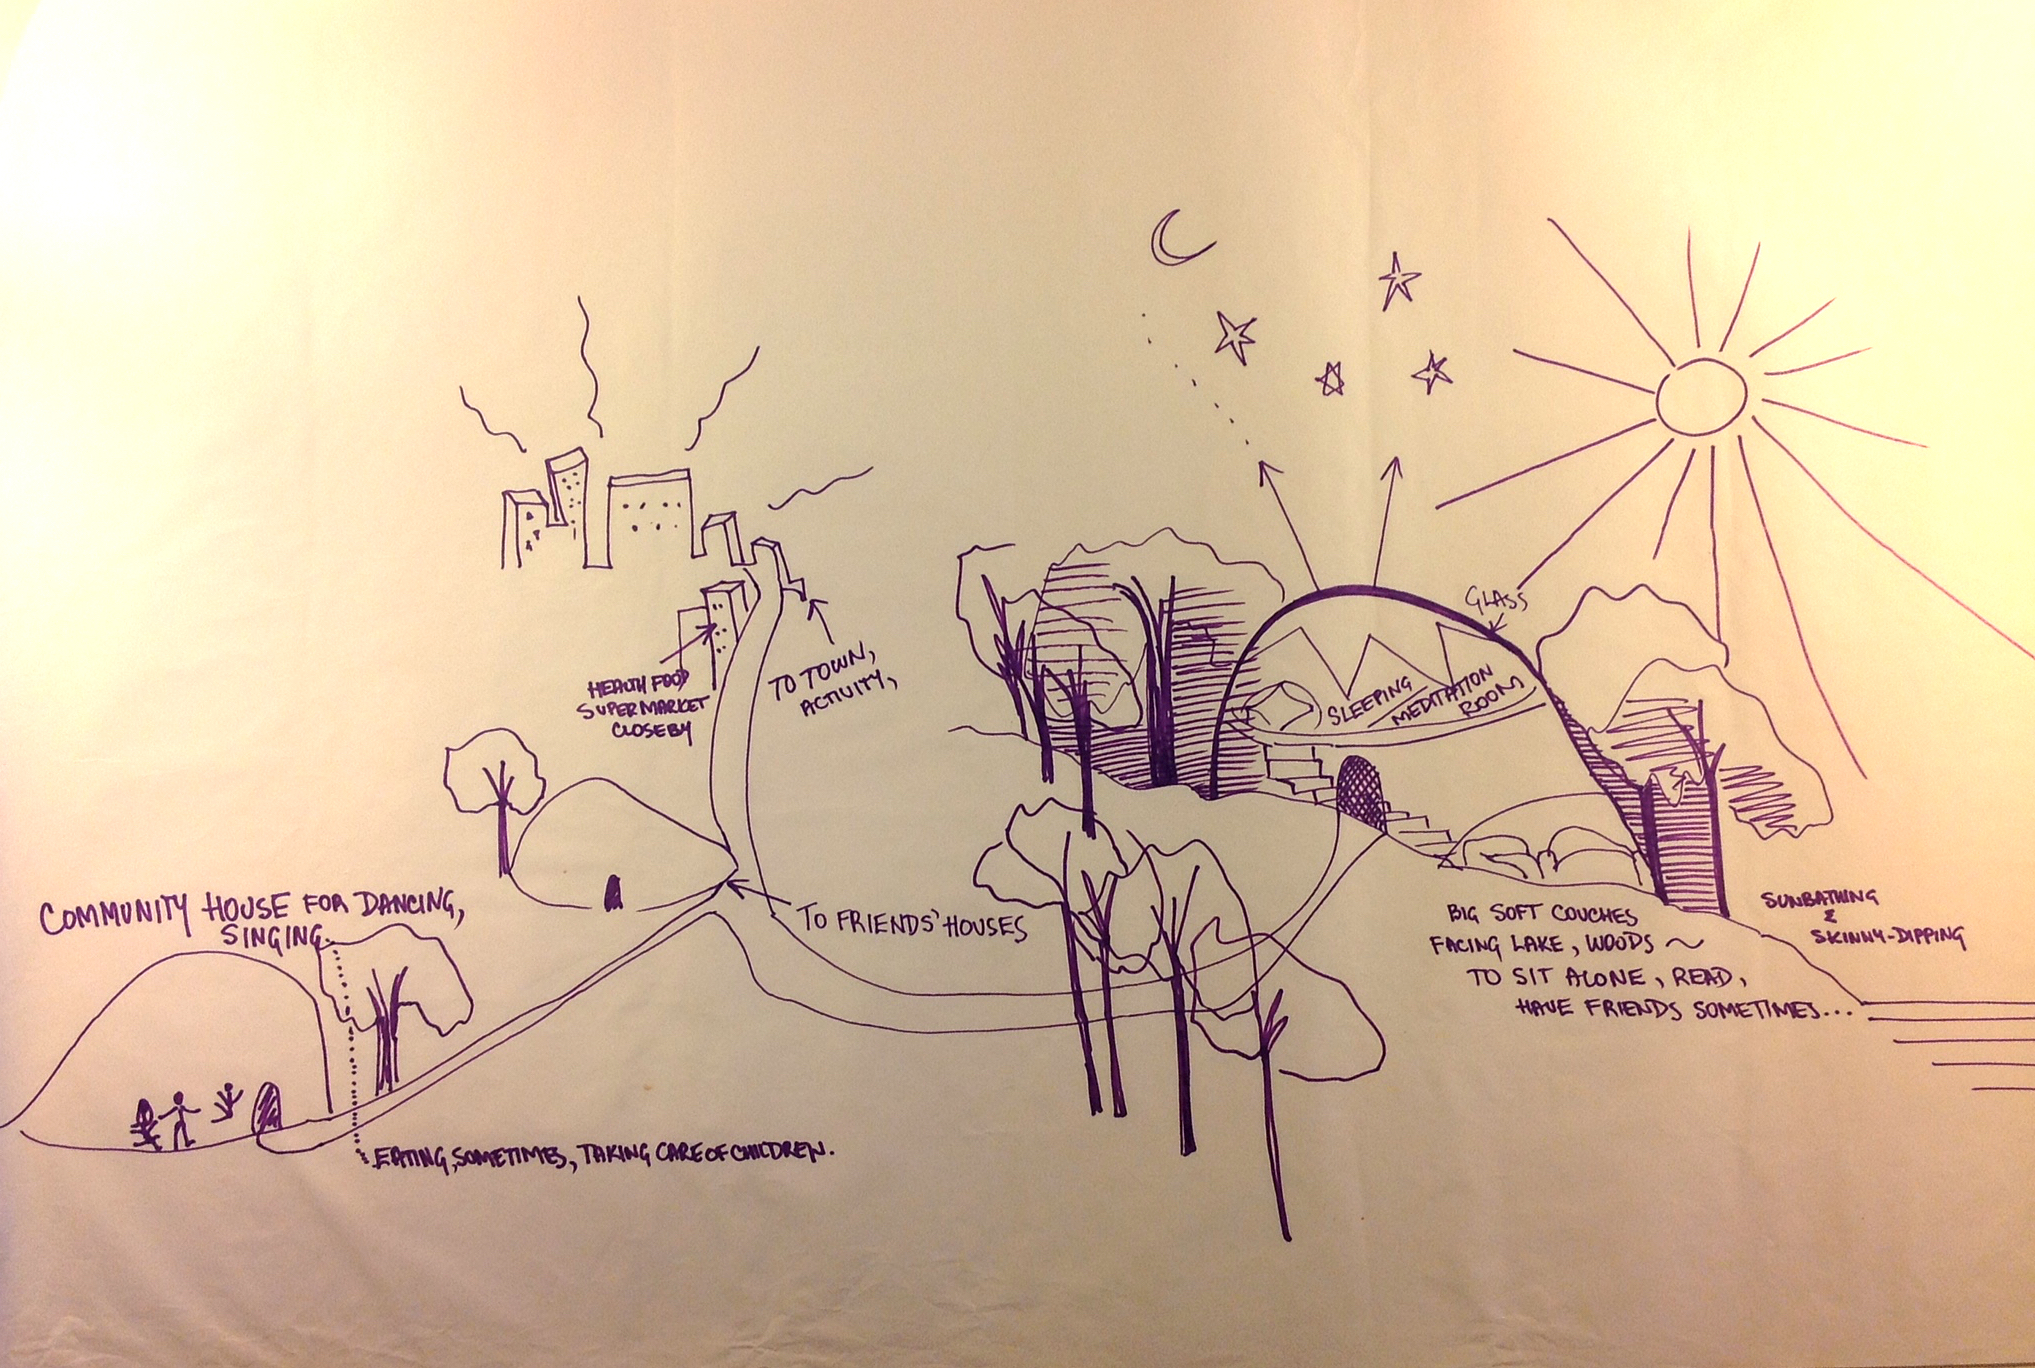 Work from an Environmental Fantasy Workshop. From the Sophia Smith Collection, Phyllis Birkby Papers, Smith College.